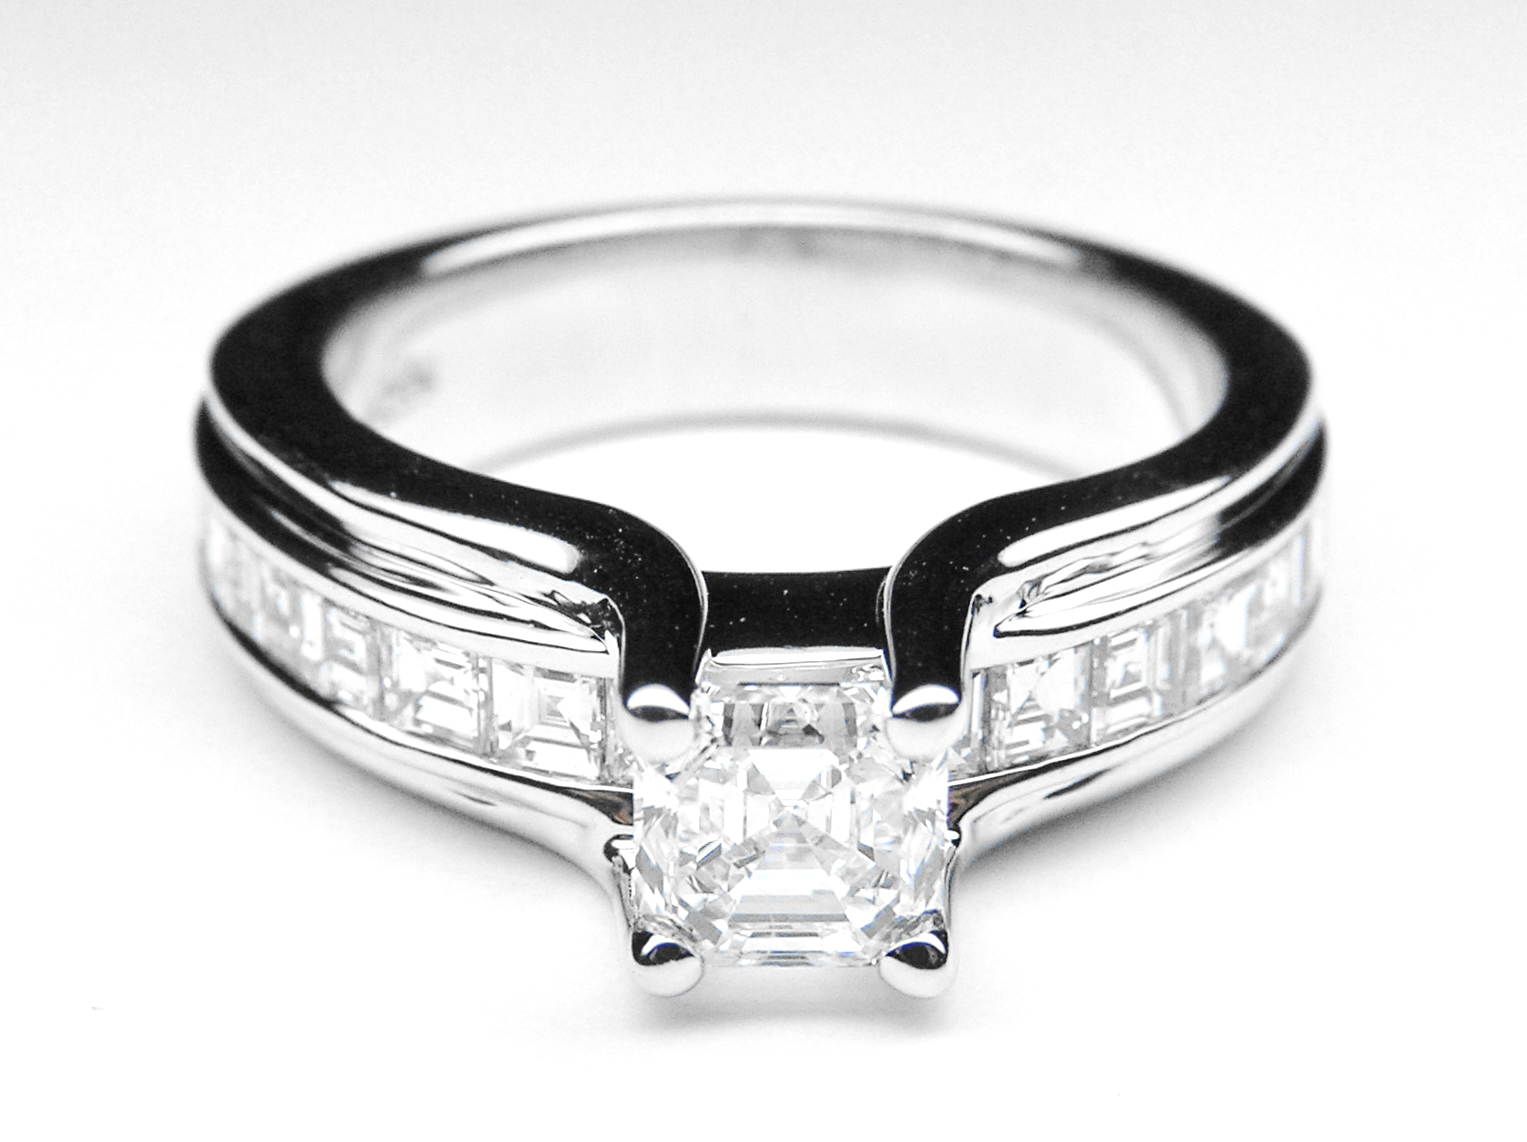 Asscher Cut Diamond Bridge Engagement Ring with Carre Cut Diamonds Channel Set